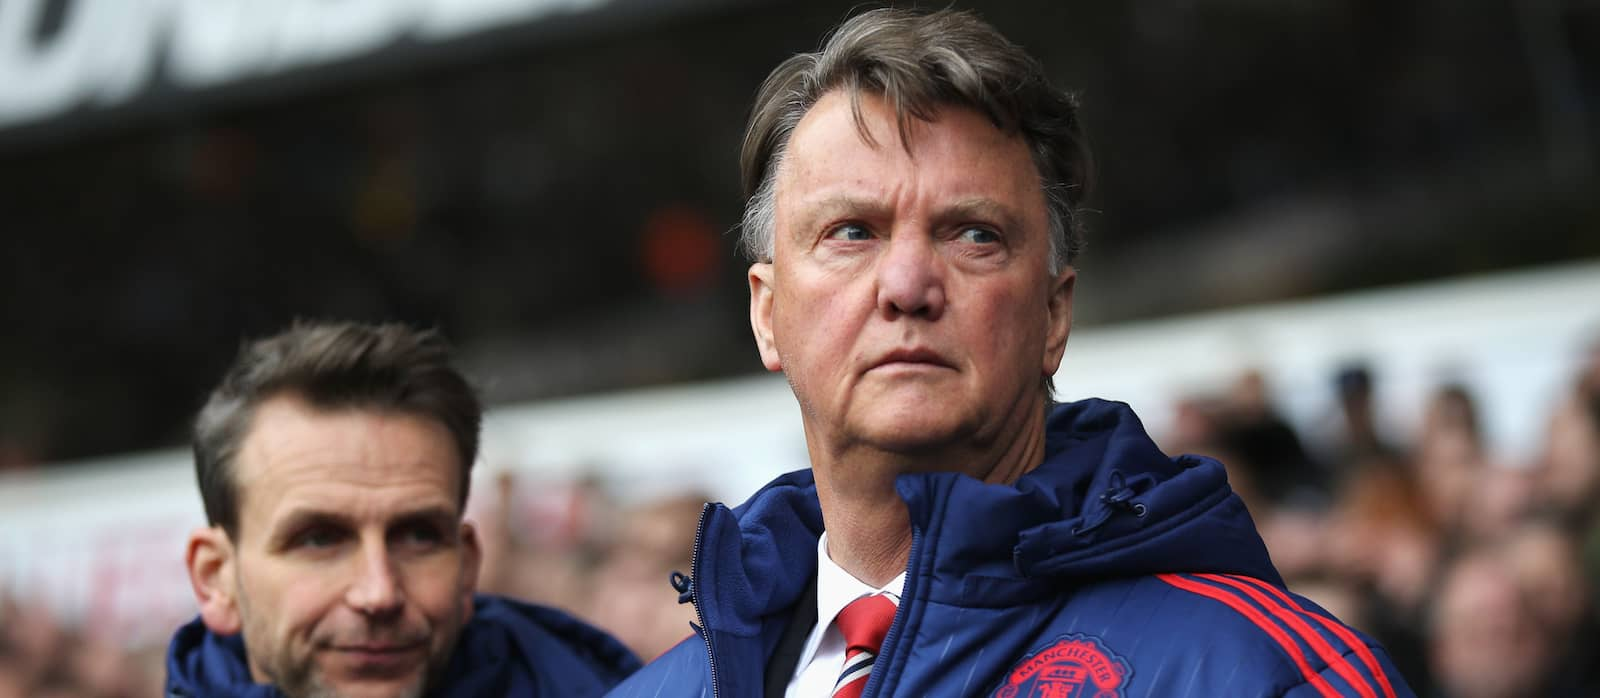 Goodbye Louis van Gaal: It's time for him to leave Man United